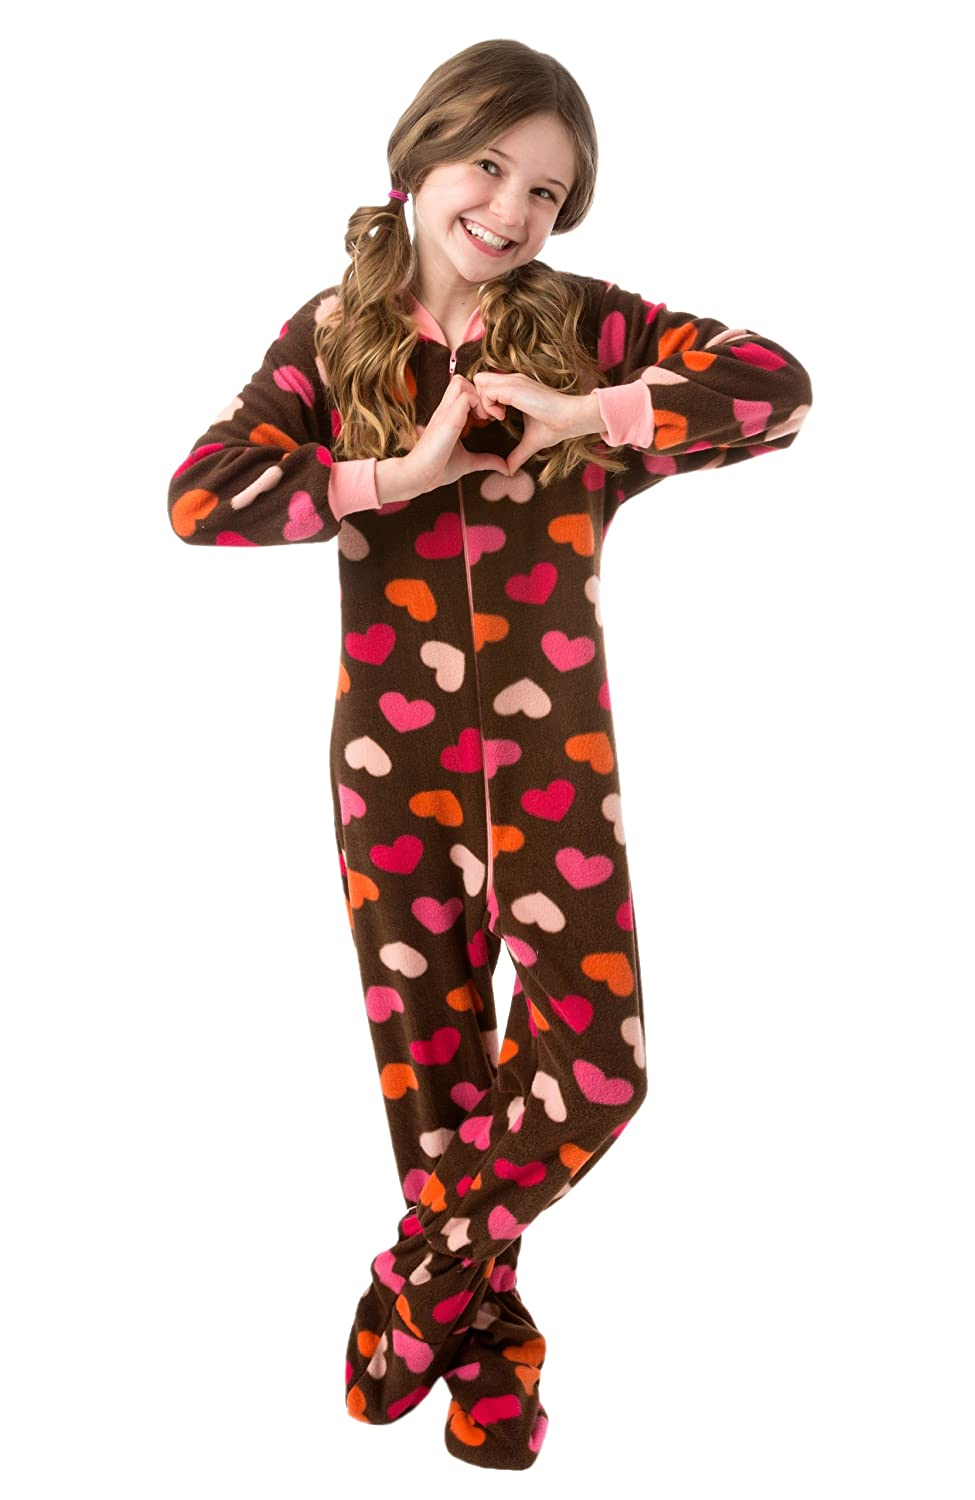 Amazon.com: Little Girls Brown with Pink Hearts Fleece Footed ...